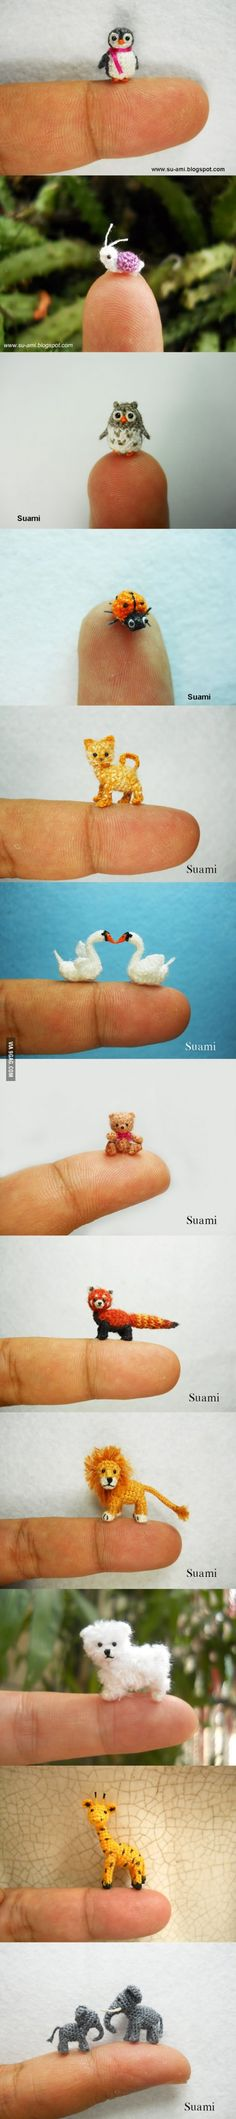 Tiny animals by Suami Toooo adorable!! Heart hurts... Must have...